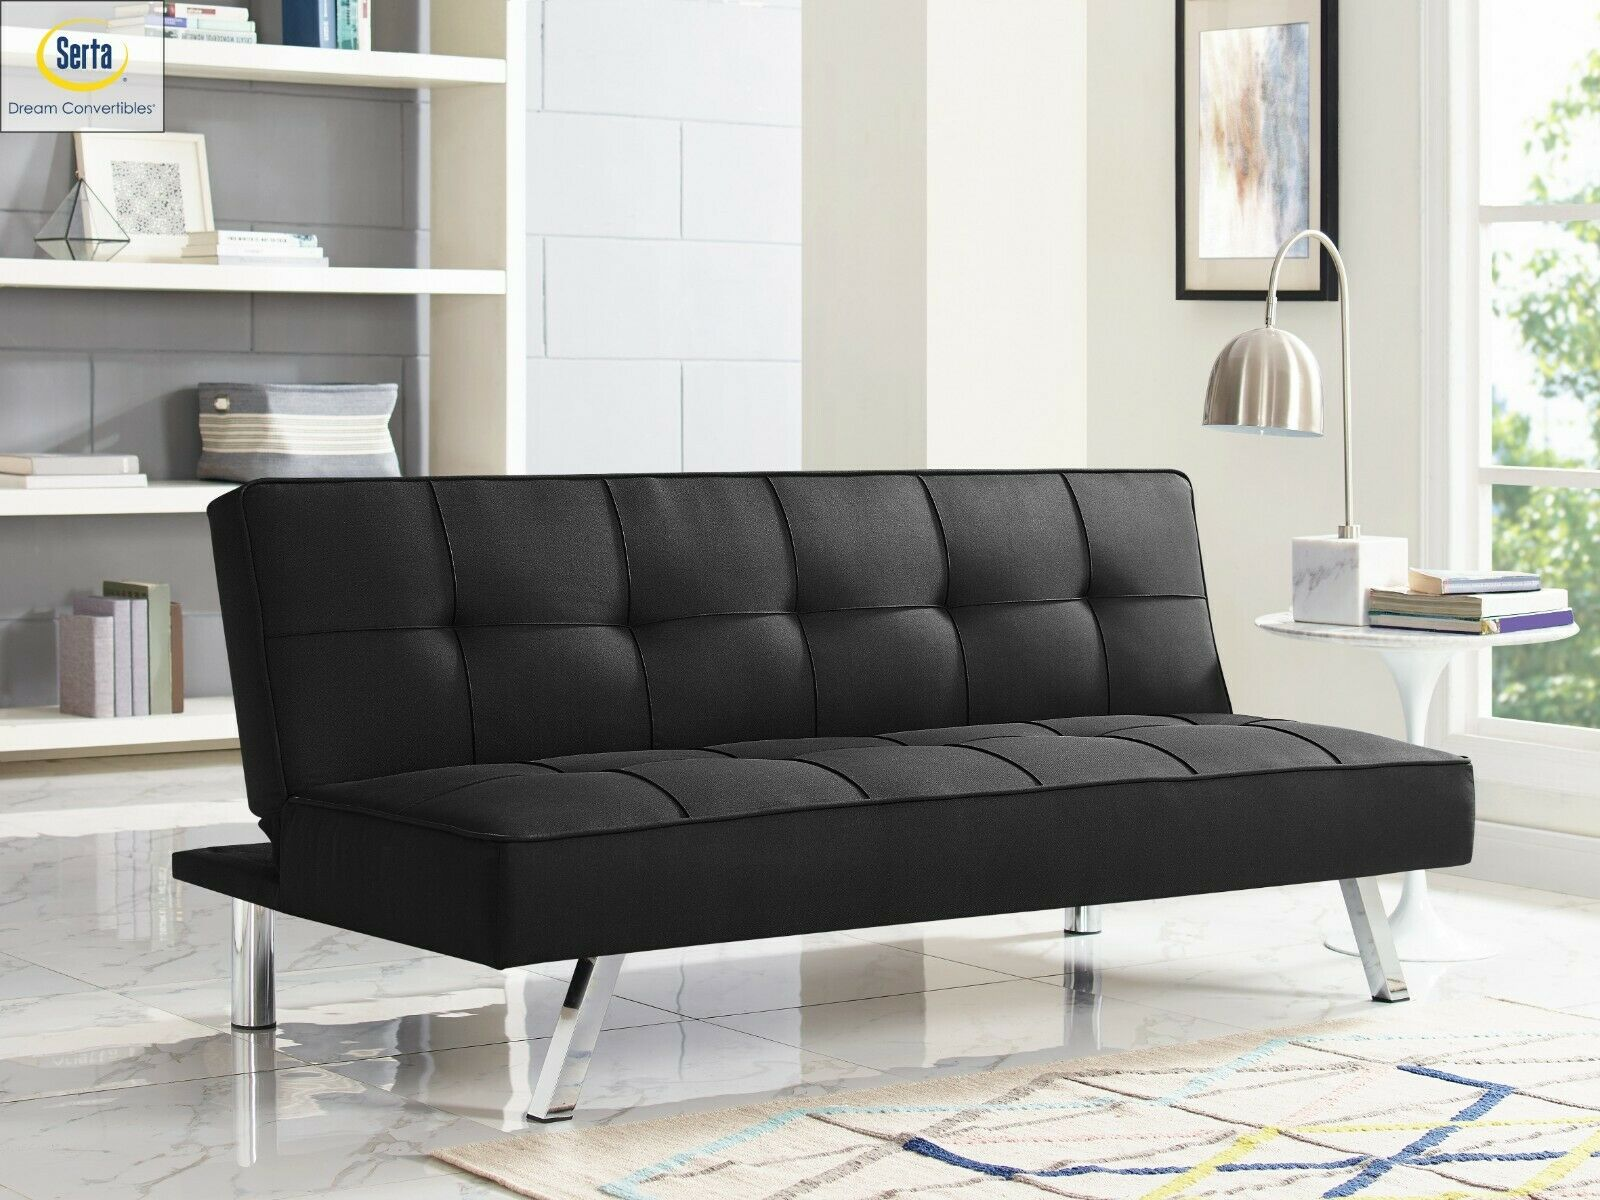 Sleeper Sofa Bed BLack Convertible Couch Modern Living Room Futon Loveseat Chair